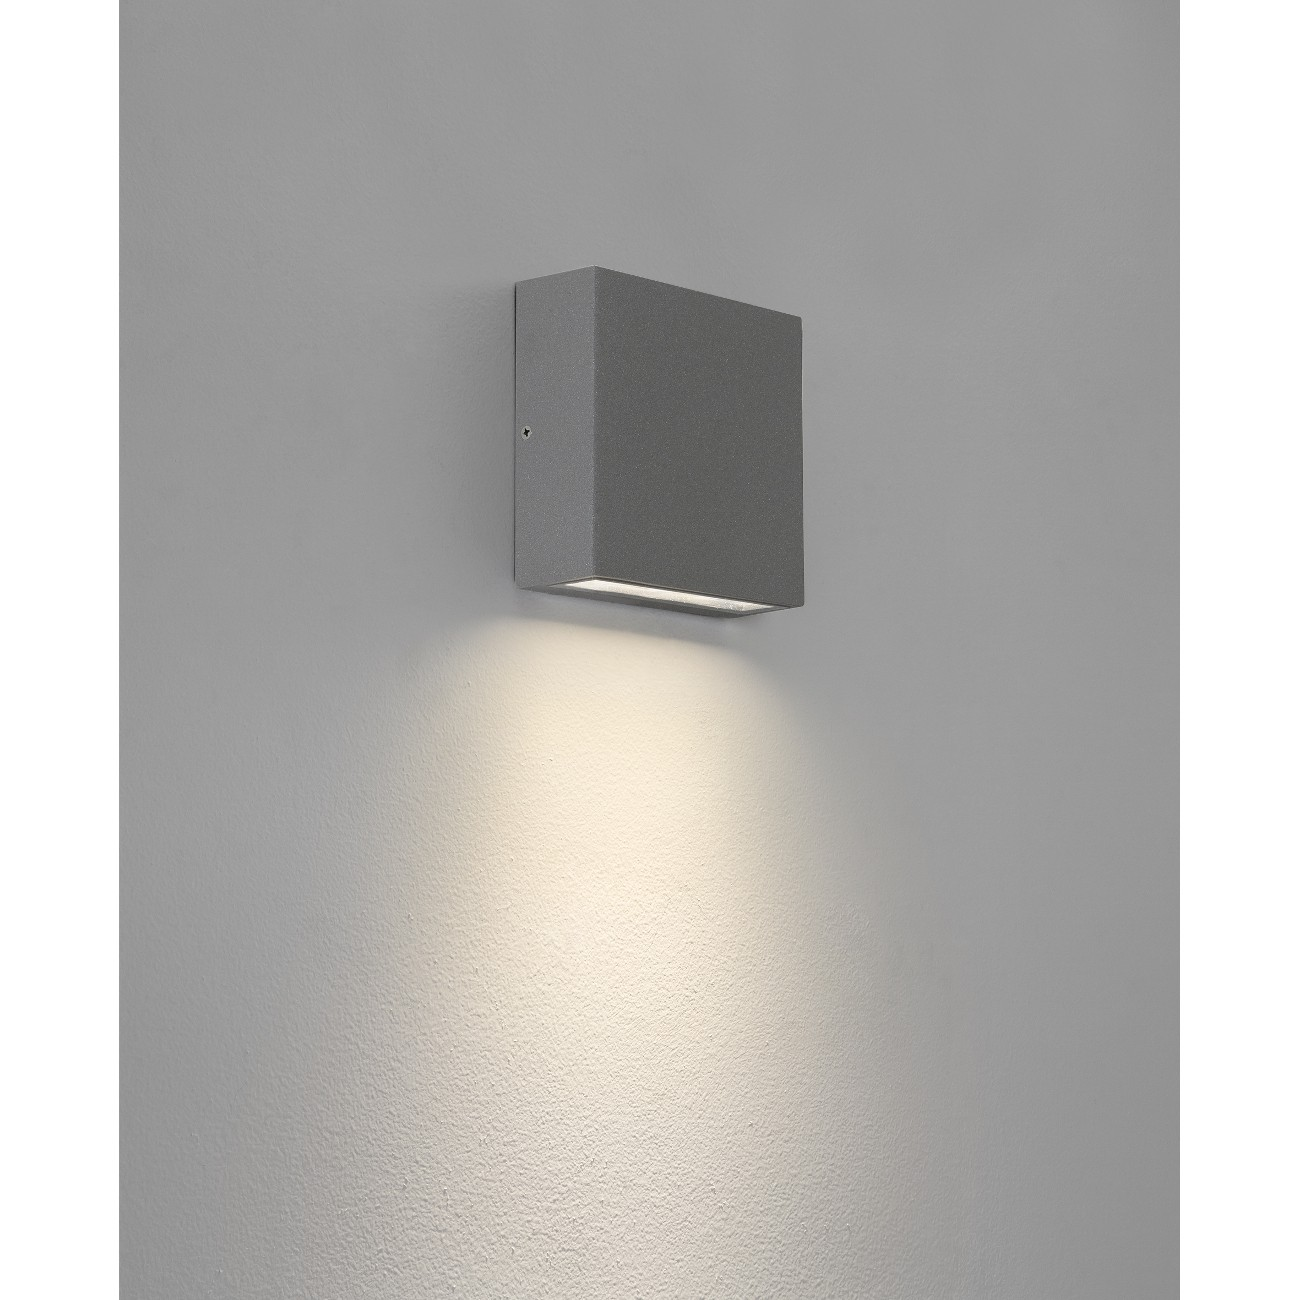 Geradlinig designte LED Außenwandleuchte / Downlight ELIS SINGLE